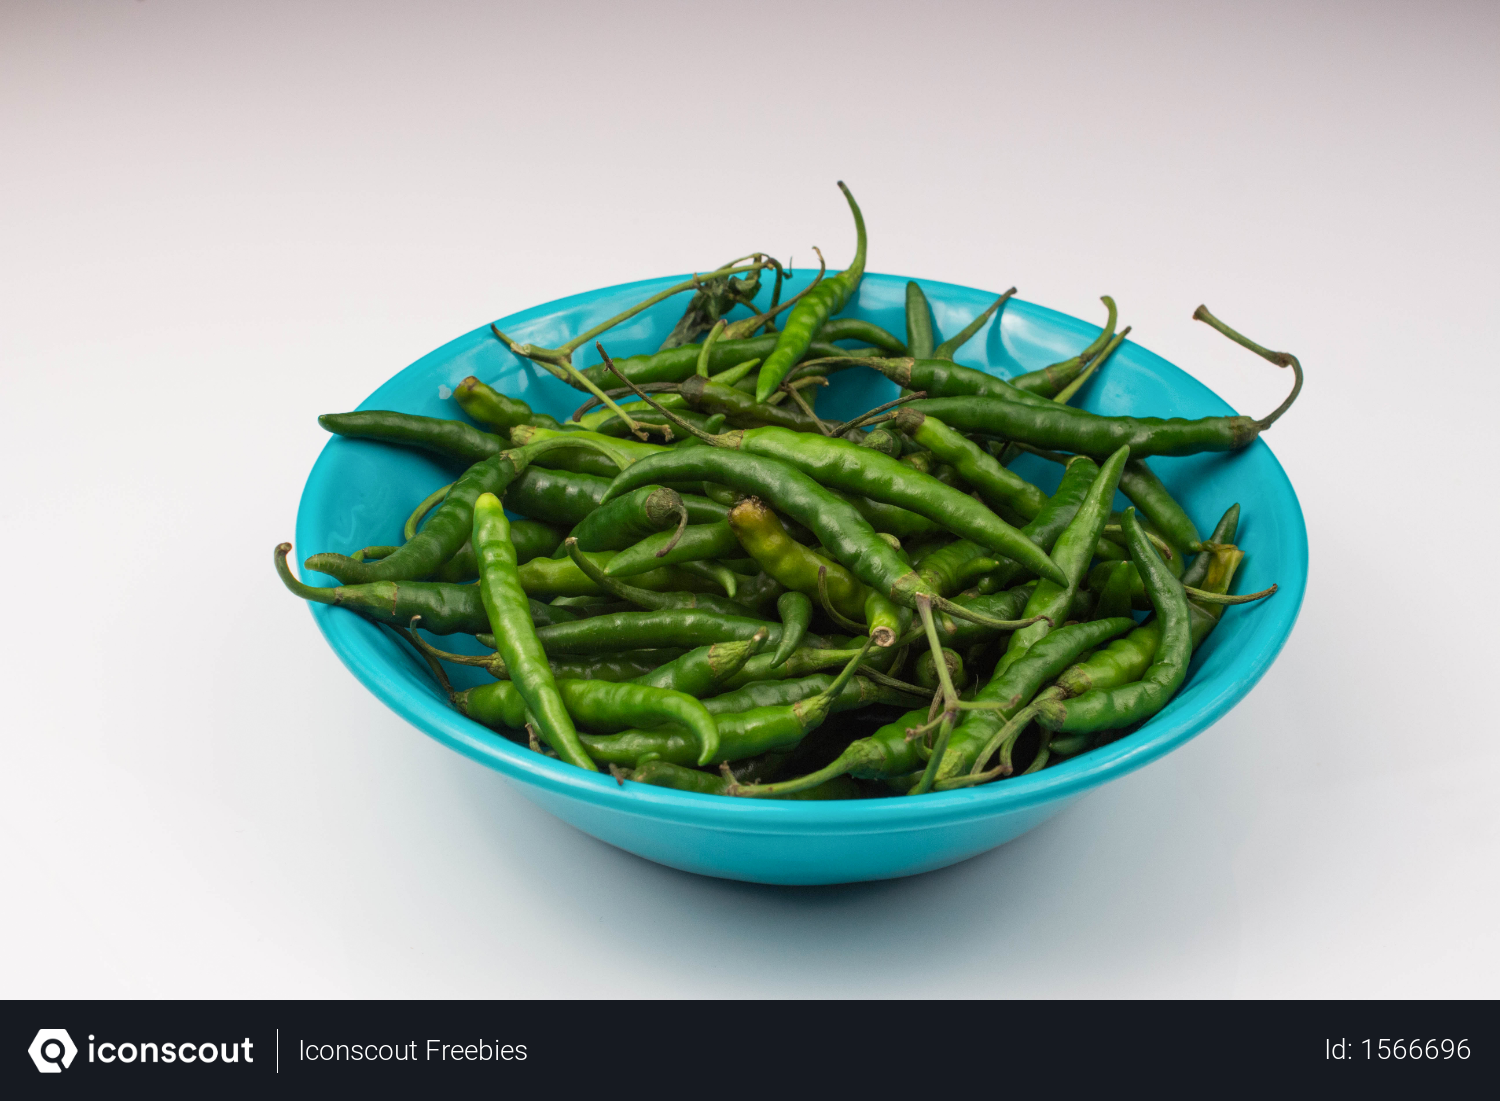 Free Green Chili Paper Vegetable In Light Blue Bowl Isolated On White Background Photo Download In Png Jpg Format Light Blue Bowls Blue Bowl Green Chilies